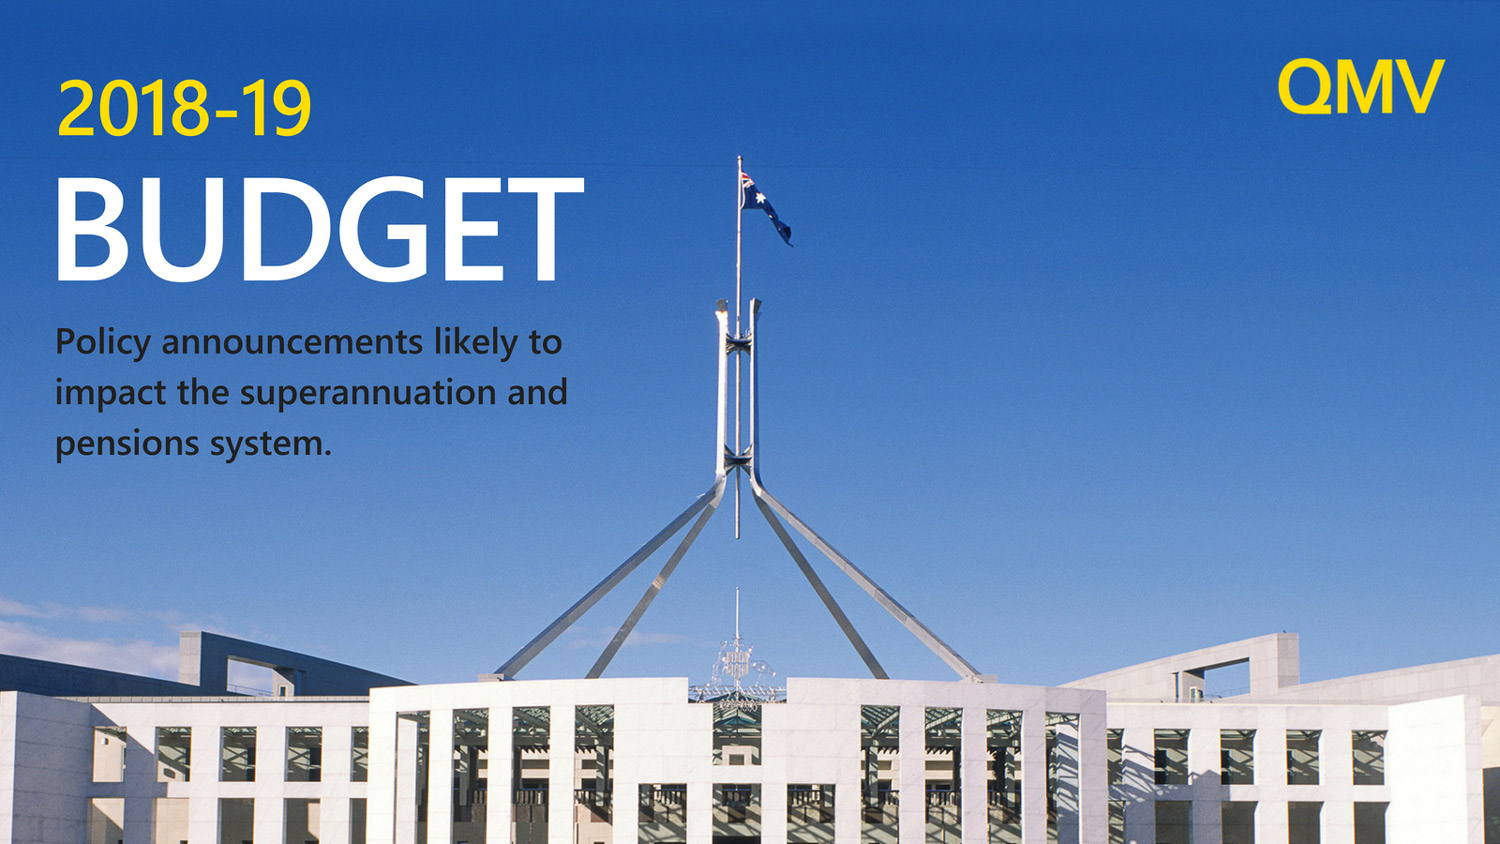 website-federal-2018-19-commonwealth-budget-superannuation-qmv-(1).jpg